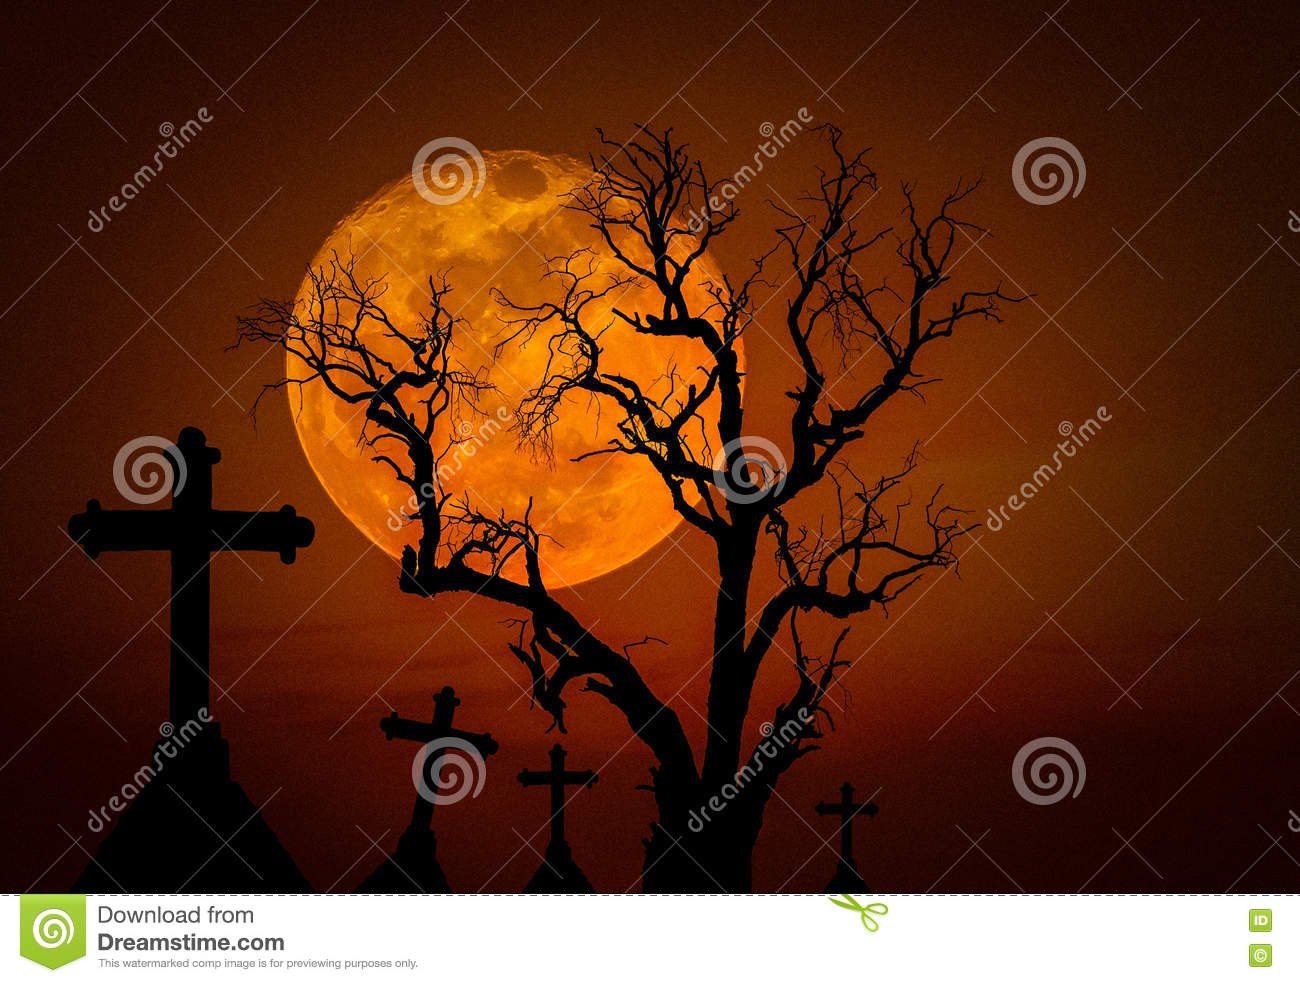 Halloween dark grunge grain concept background with scary dead tree and spooky silhouette crosses and full mo